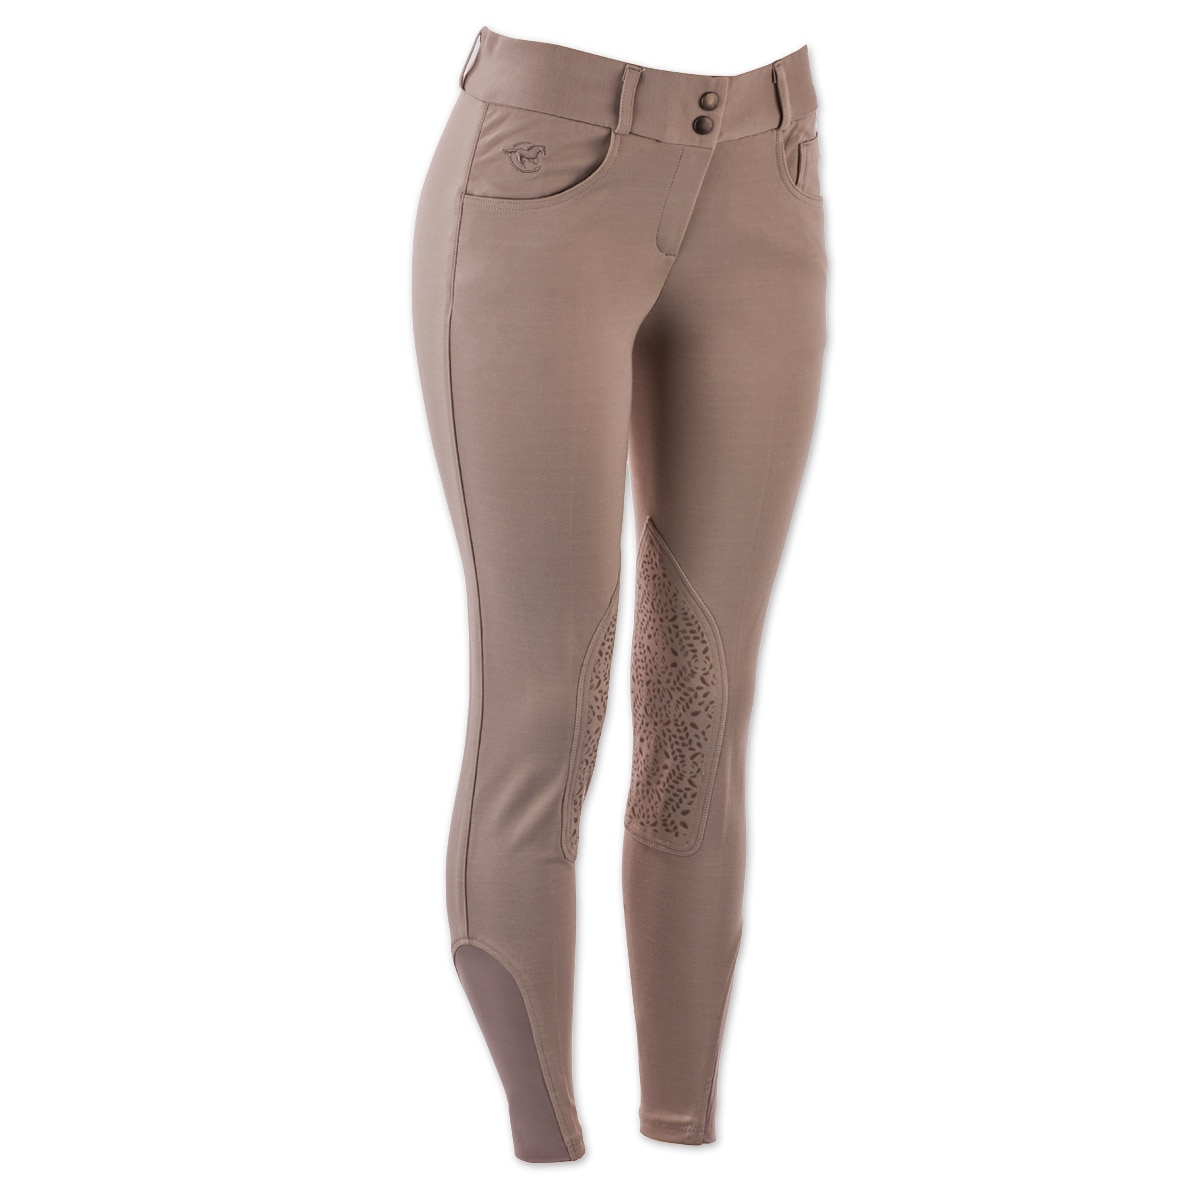 Piper Knit Breeches by SmartPak - Low Rise Knee Patch - Sale!